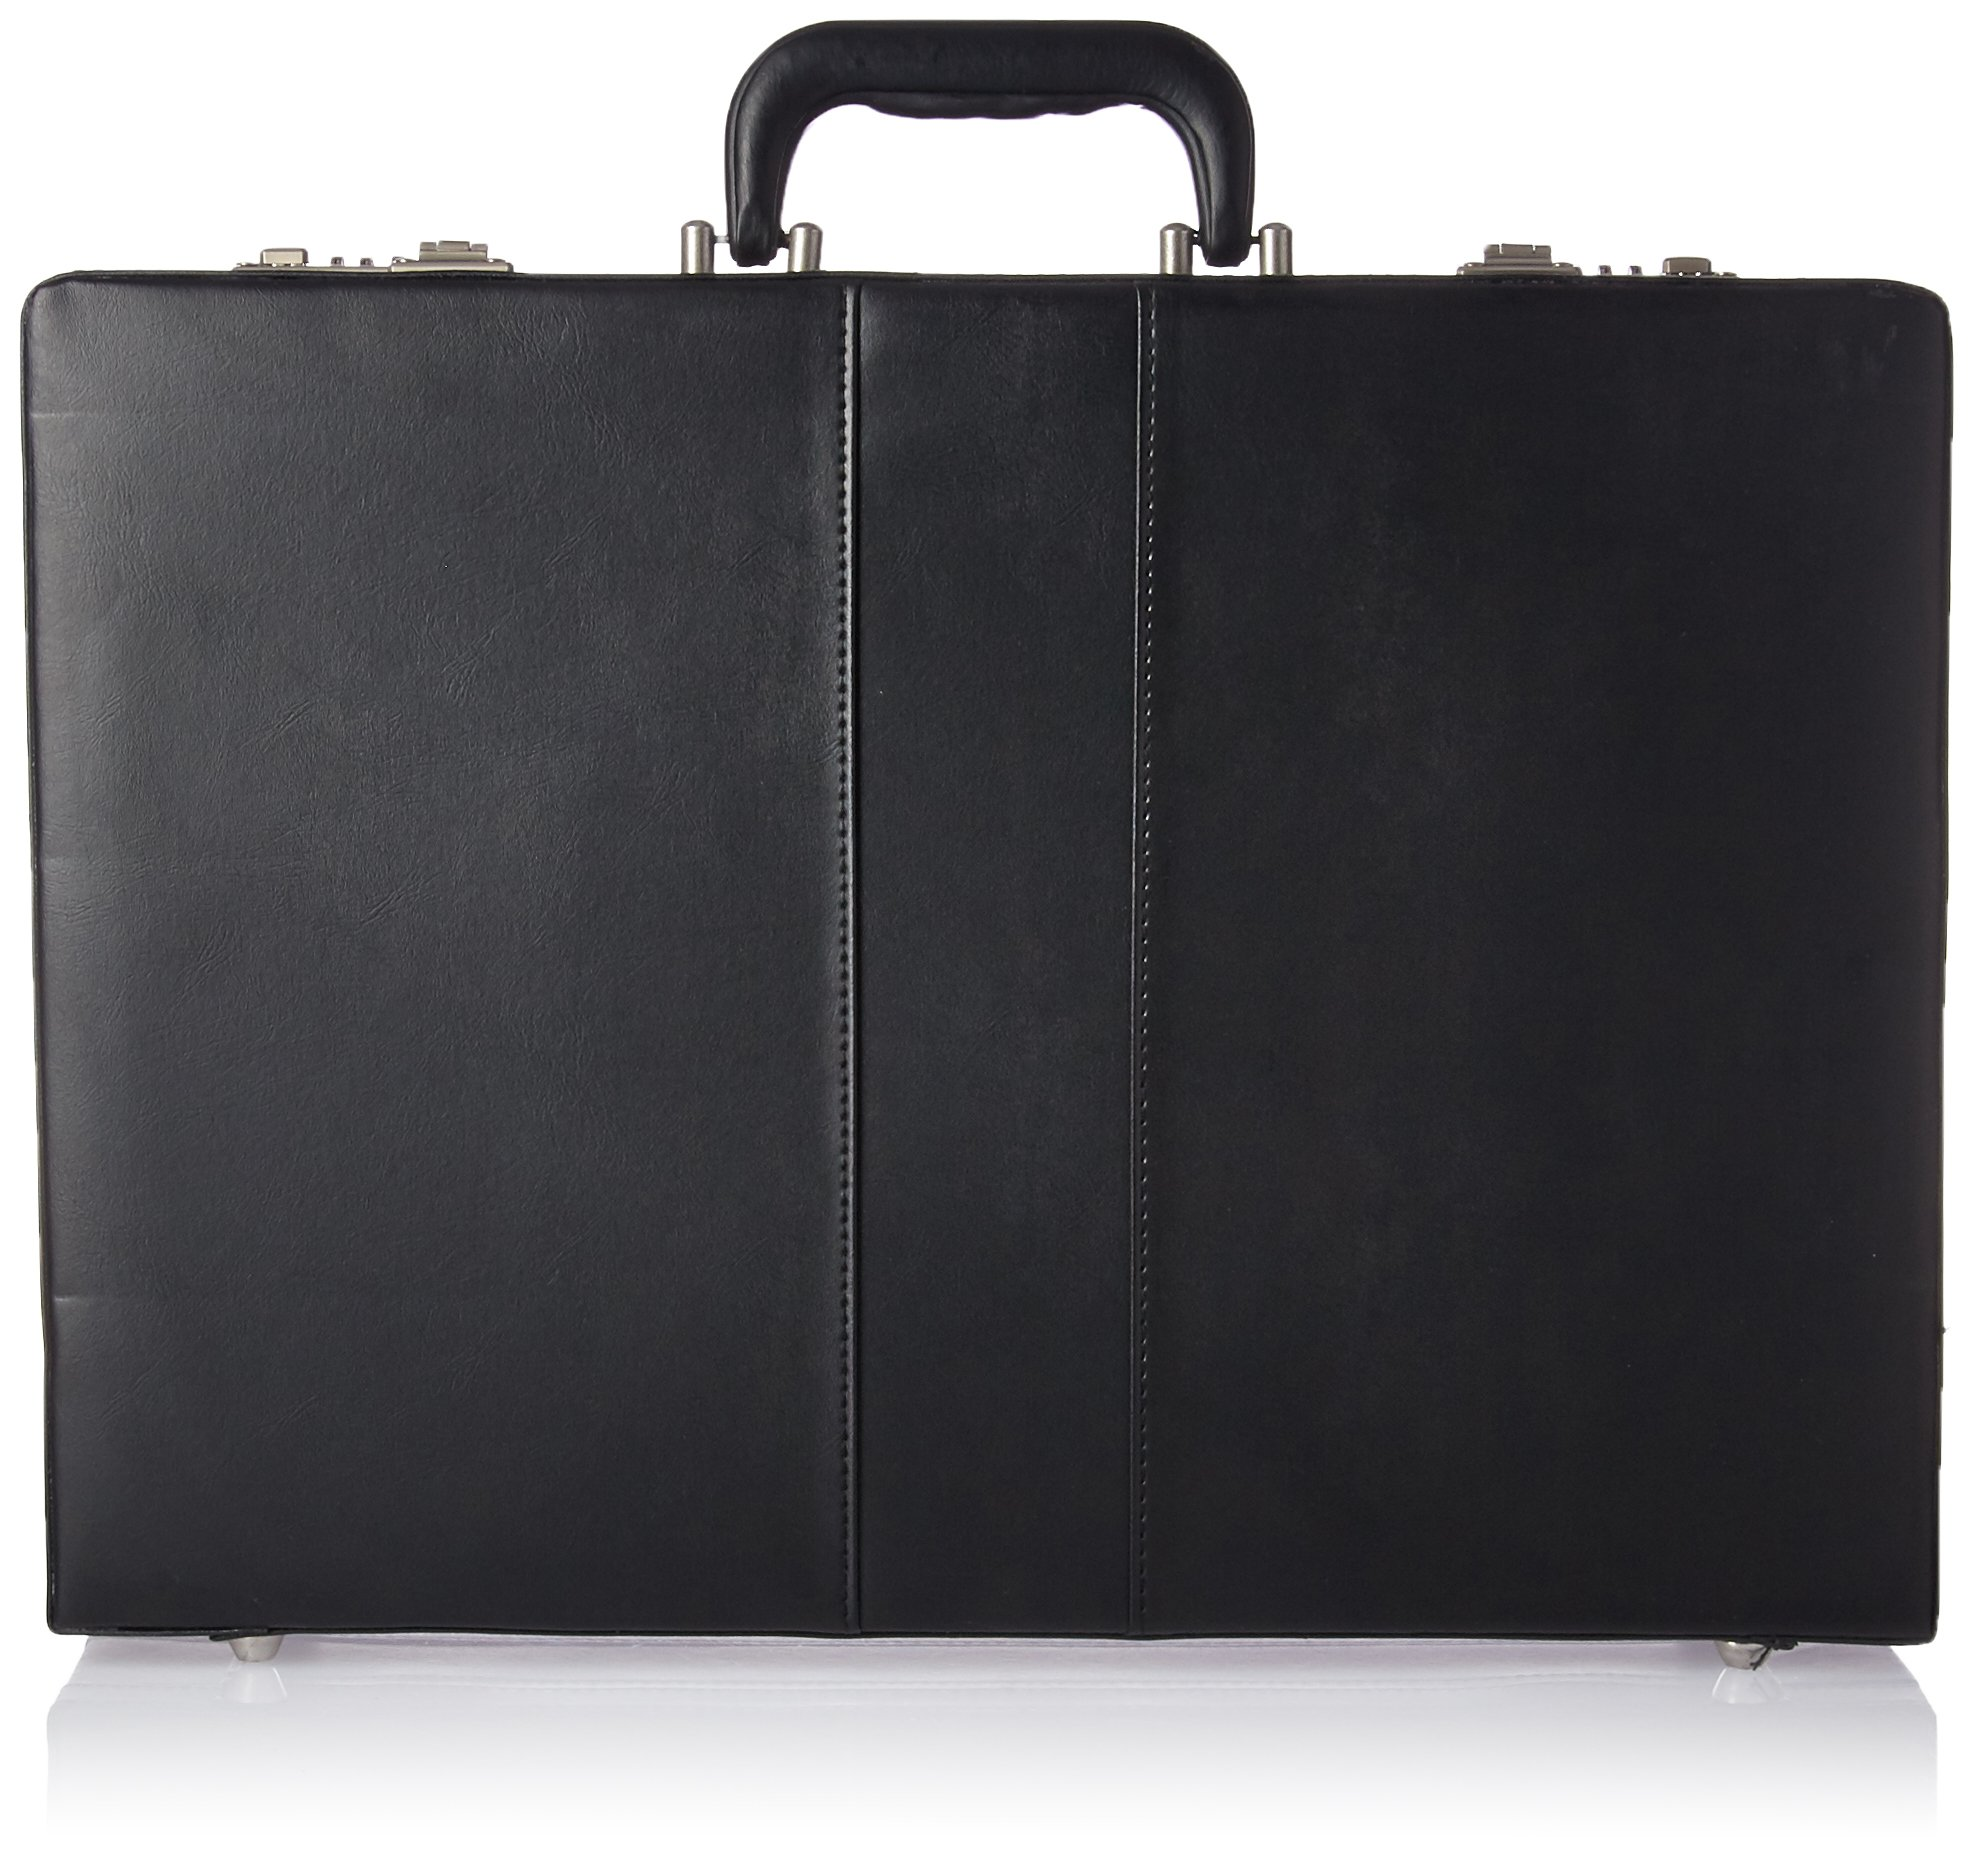 Lorell LLR61614 Expandable Attache Case by Lorell